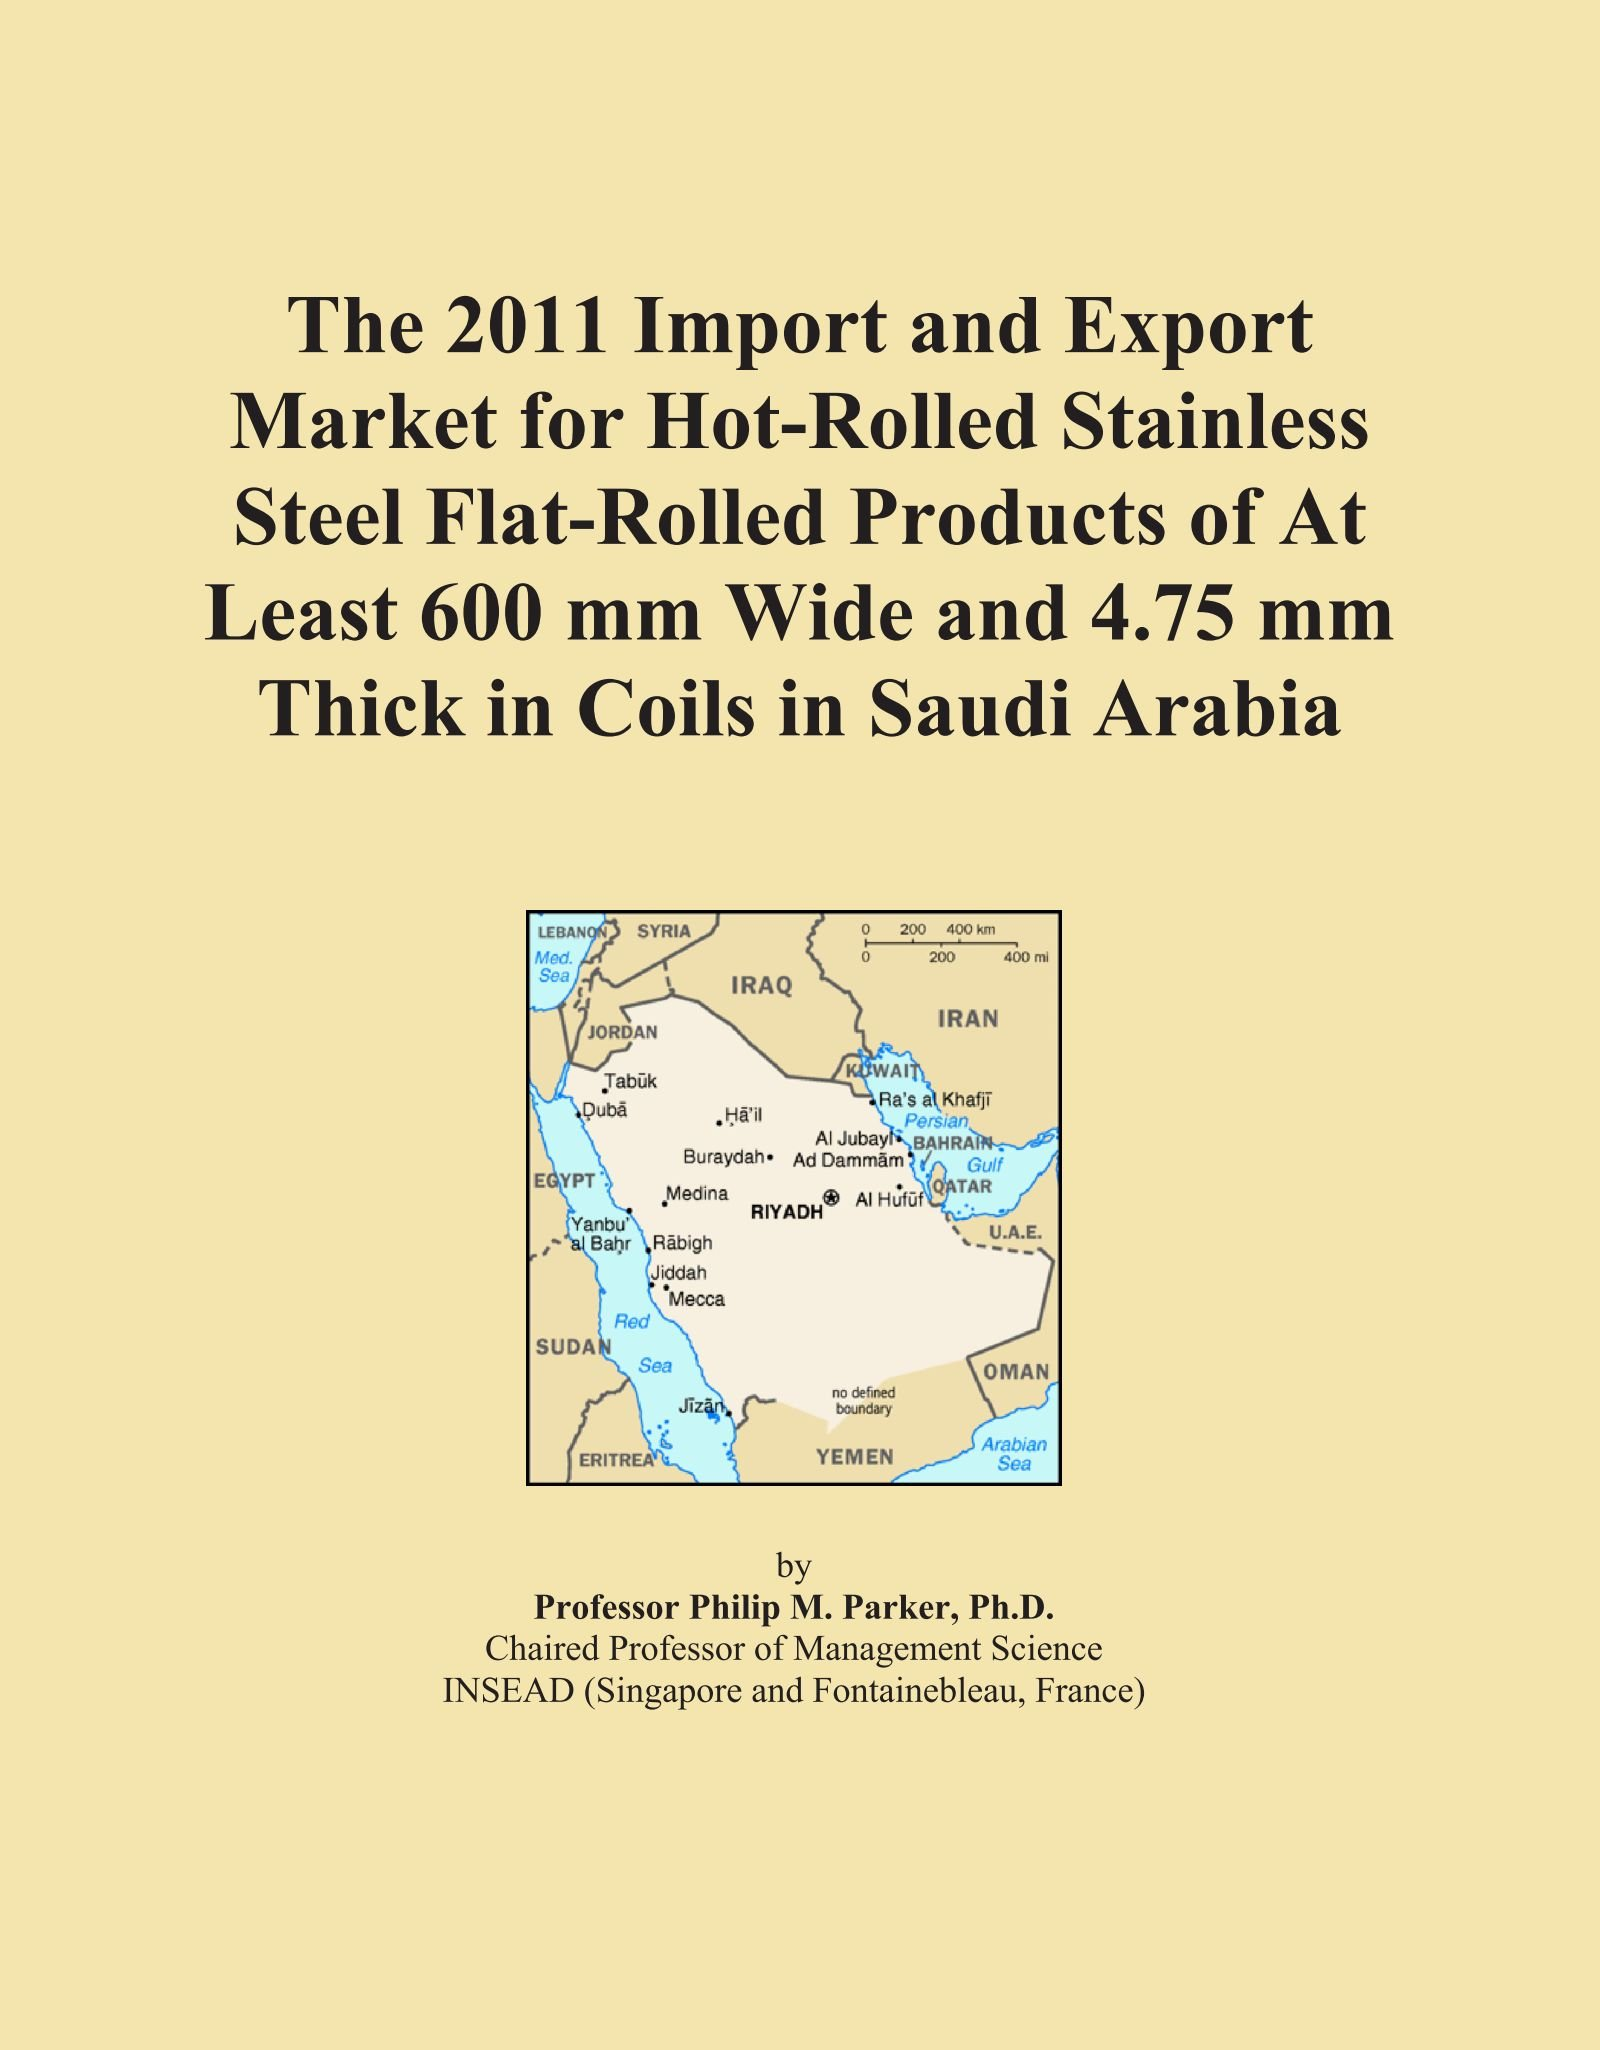 Download The 2011 Import and Export Market for Hot-Rolled Stainless Steel Flat-Rolled Products of At Least 600 mm Wide and 4.75 mm Thick in Coils in Saudi Arabia pdf